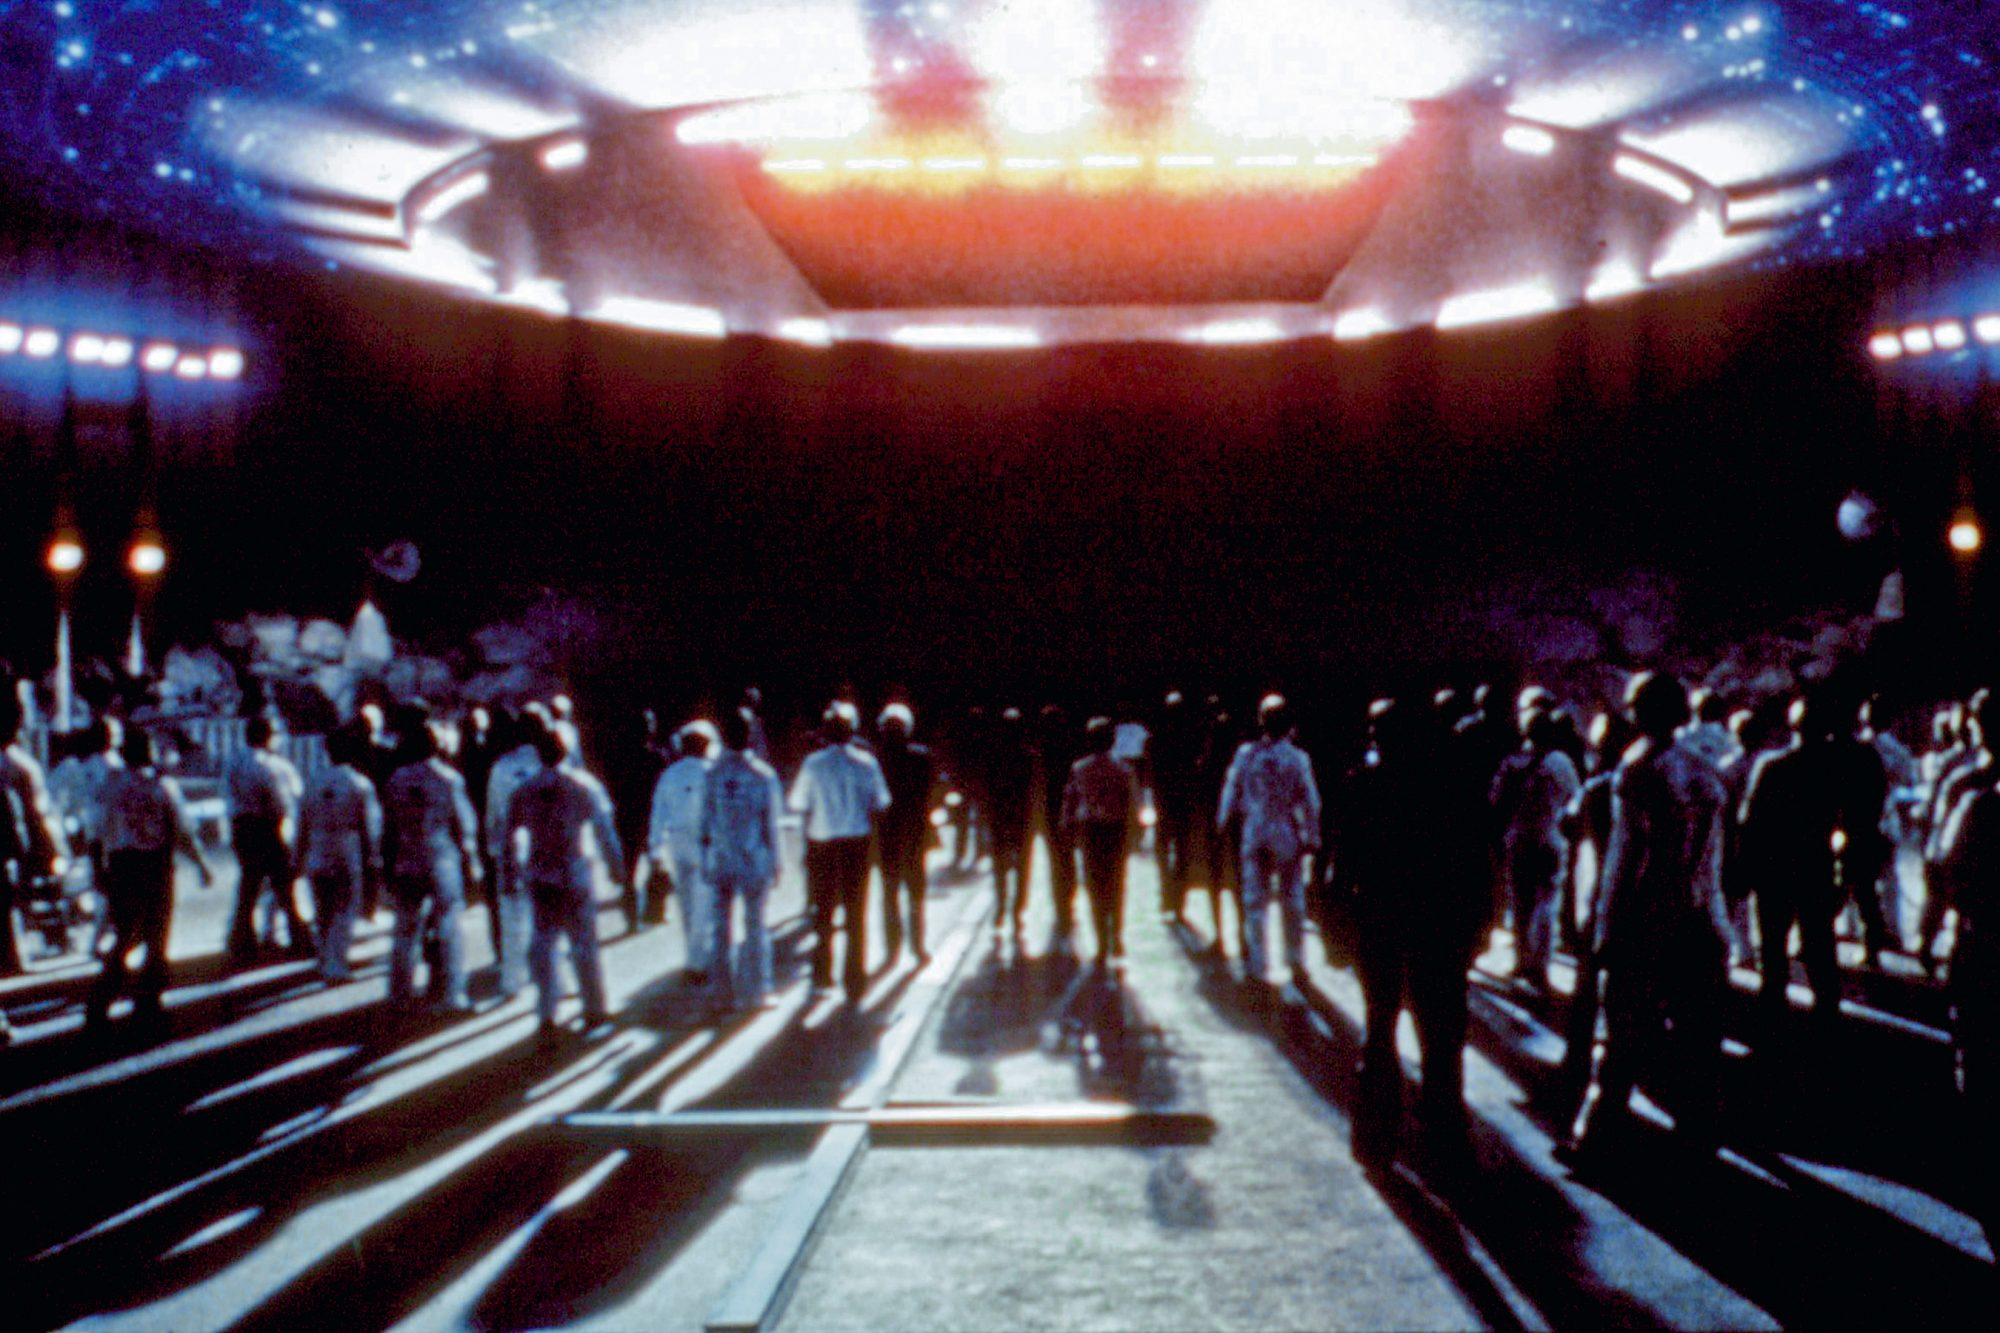 CLOSE ENCOUNTERS OF THE THIRD KIND, 1977. (c)Columbia Pictures. Courtesy: Everett Collection.